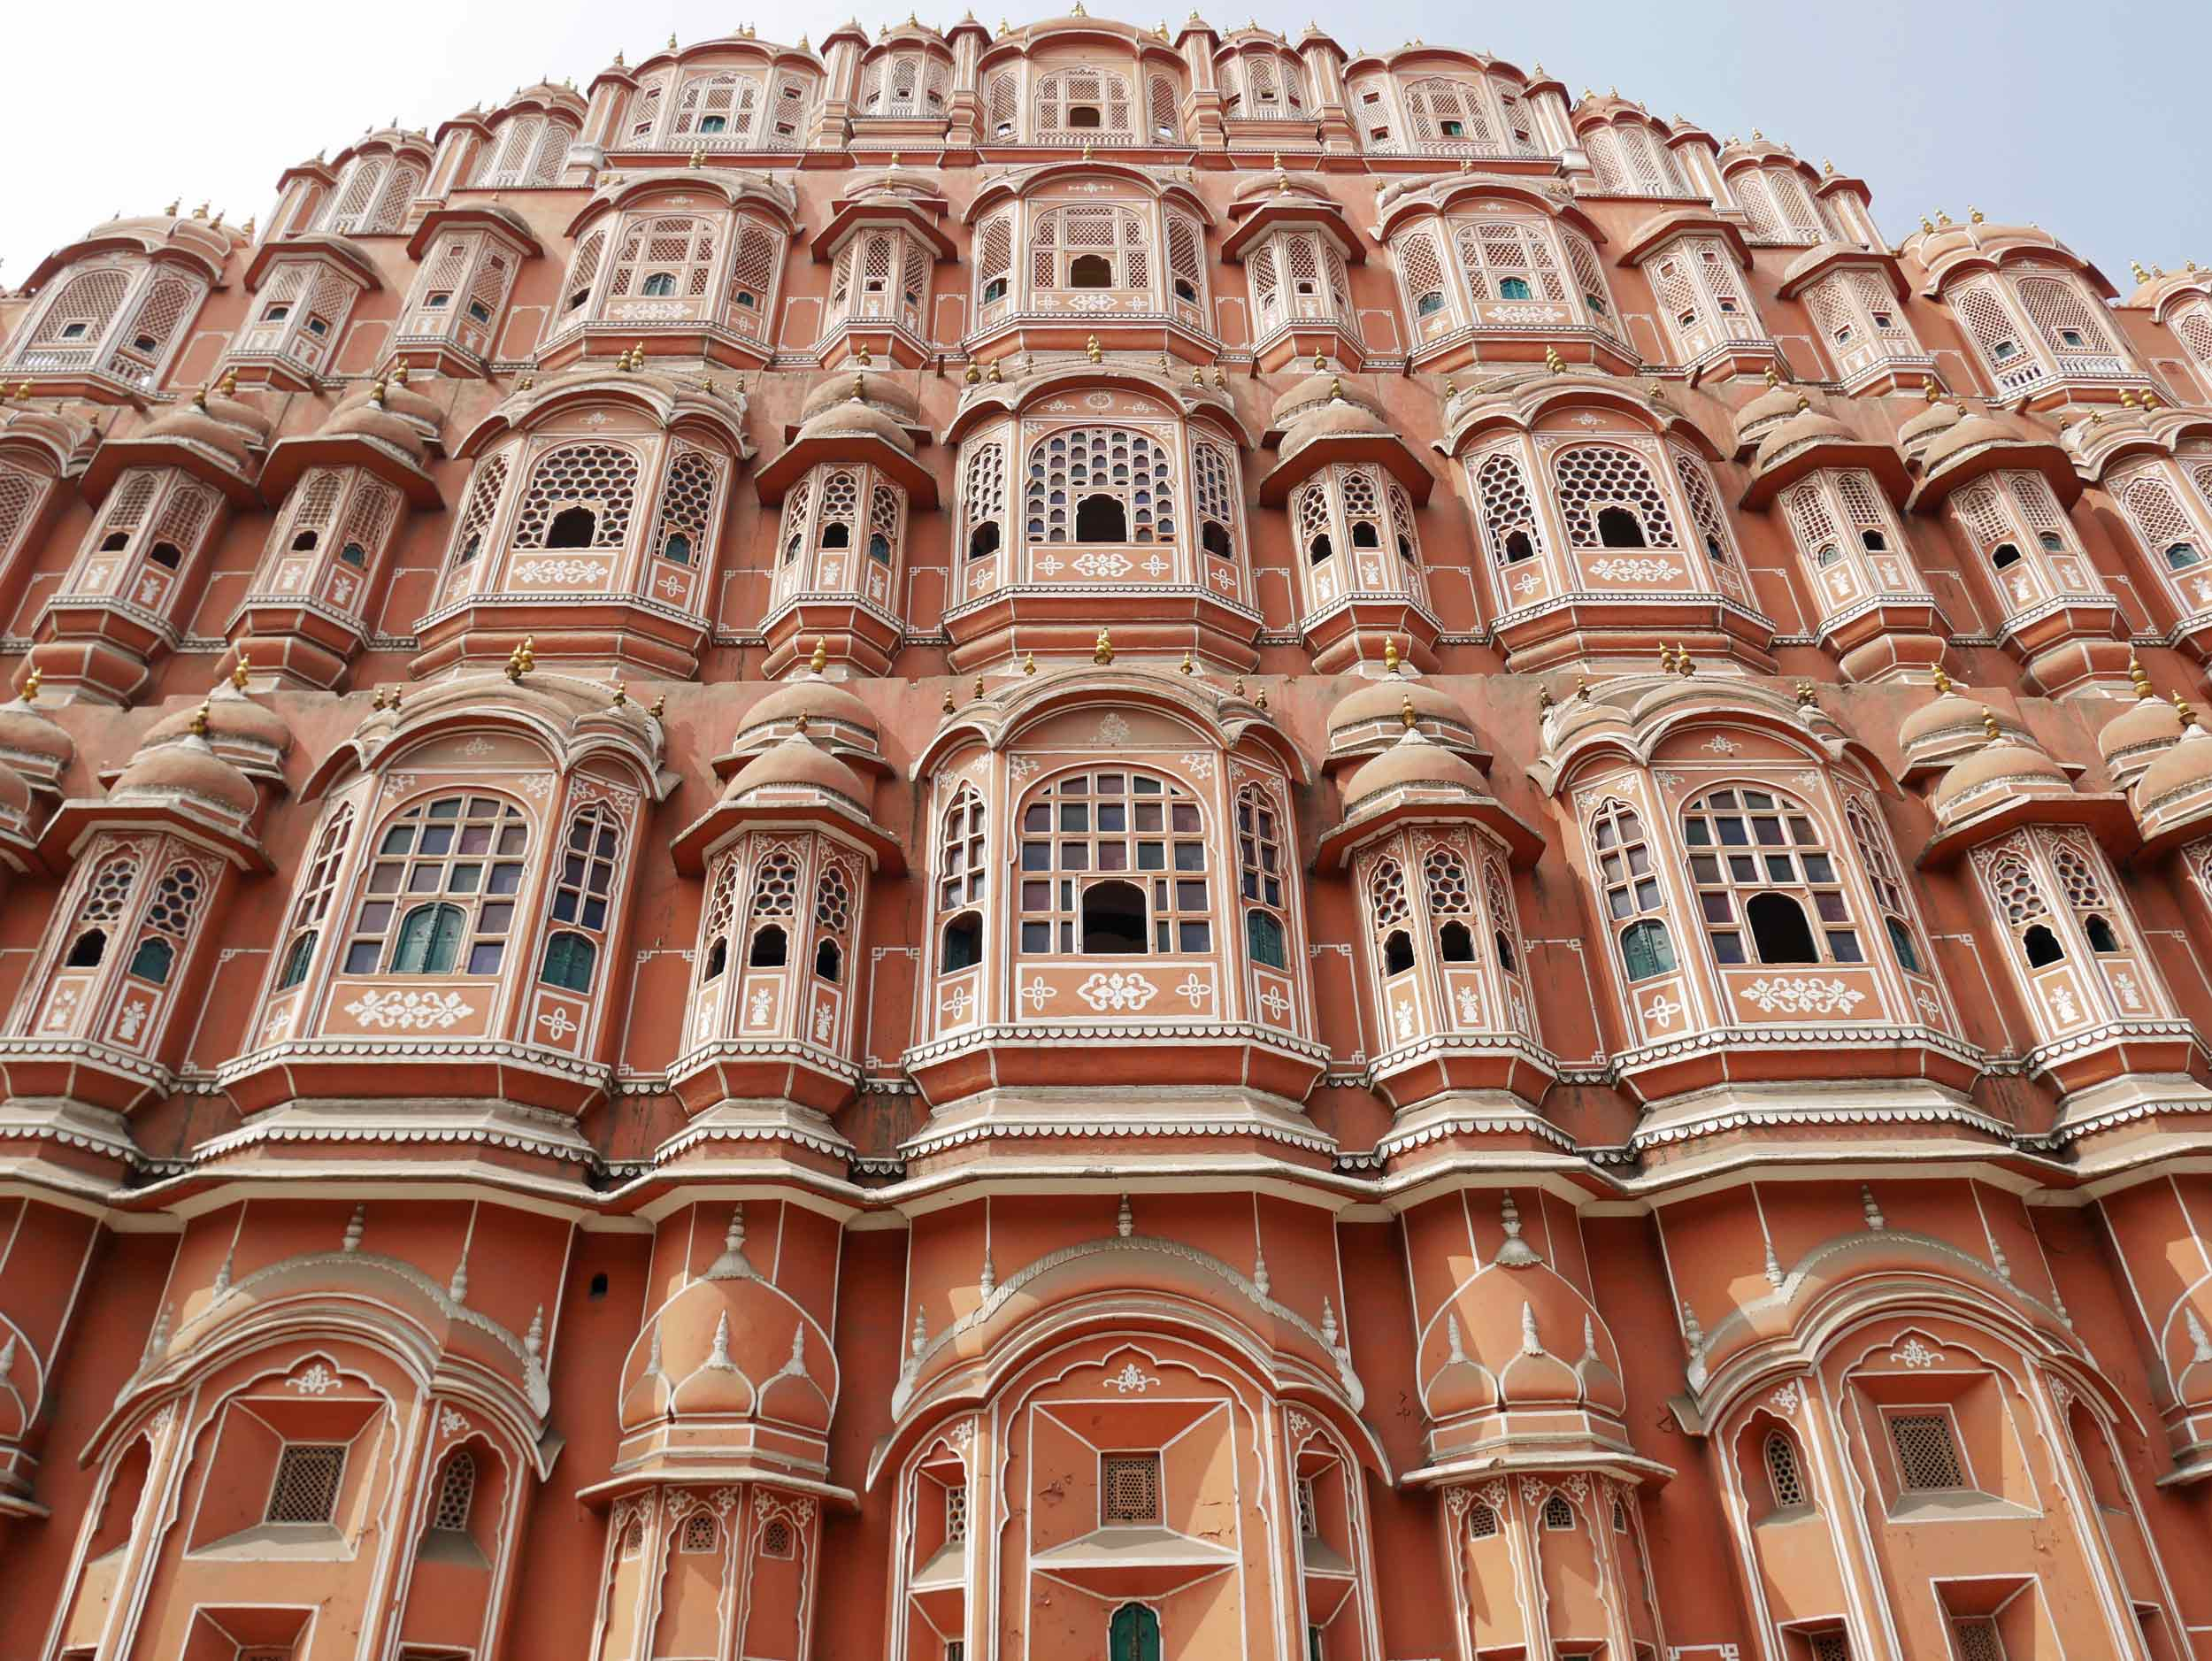 """Awa Mahal - aka the """"Palace of Winds"""" -in Jaipur, India, is so named because it was essentially a high screen wall built for the women of the royal household to observe street festivities in Jaipur while remaining unseen (Nov 10)."""